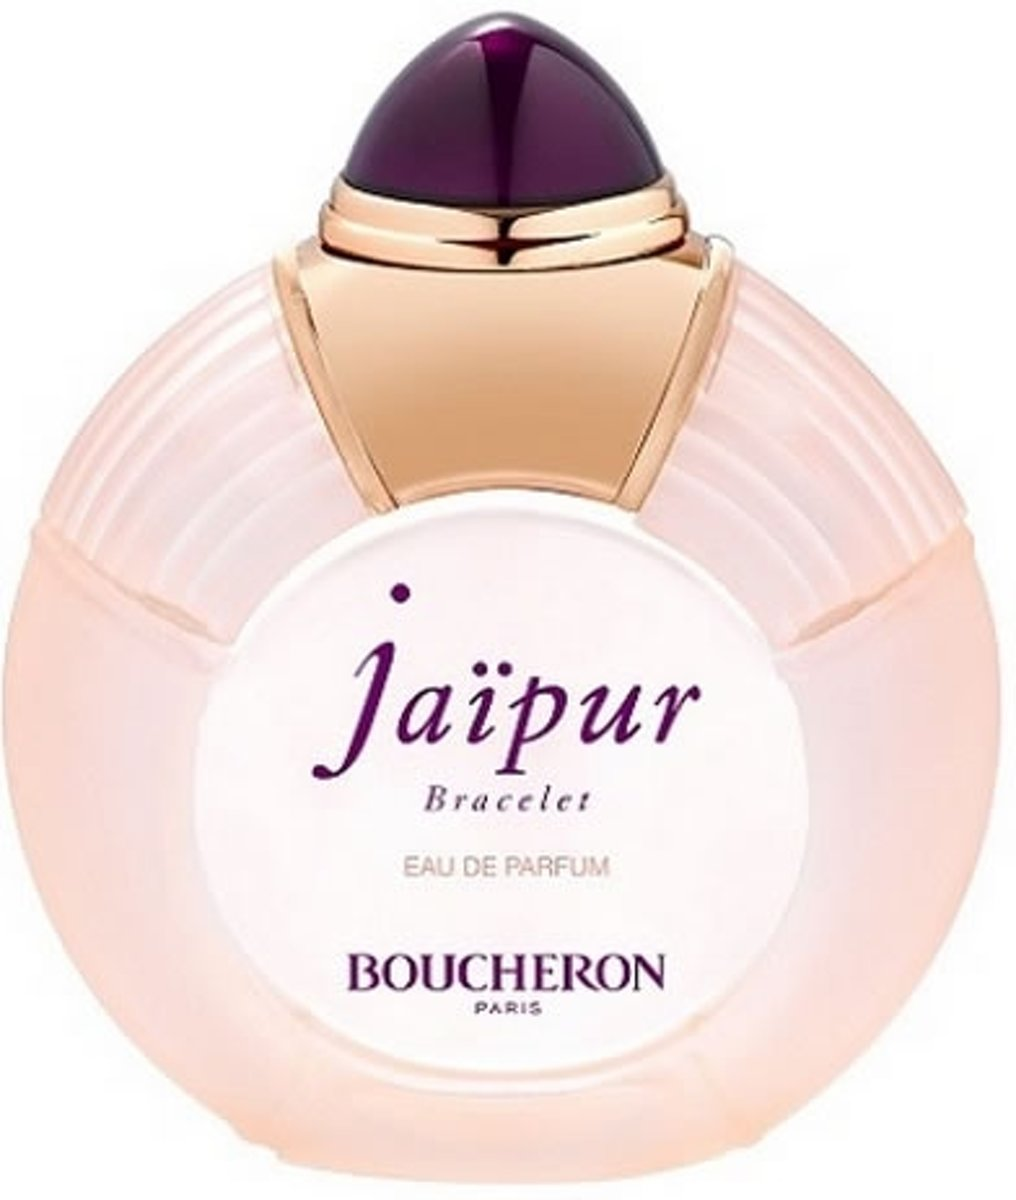 MULTI BUNDEL 2 stuks Boucheron Jaipur Bracelet Eau De Perfume Spray 100ml